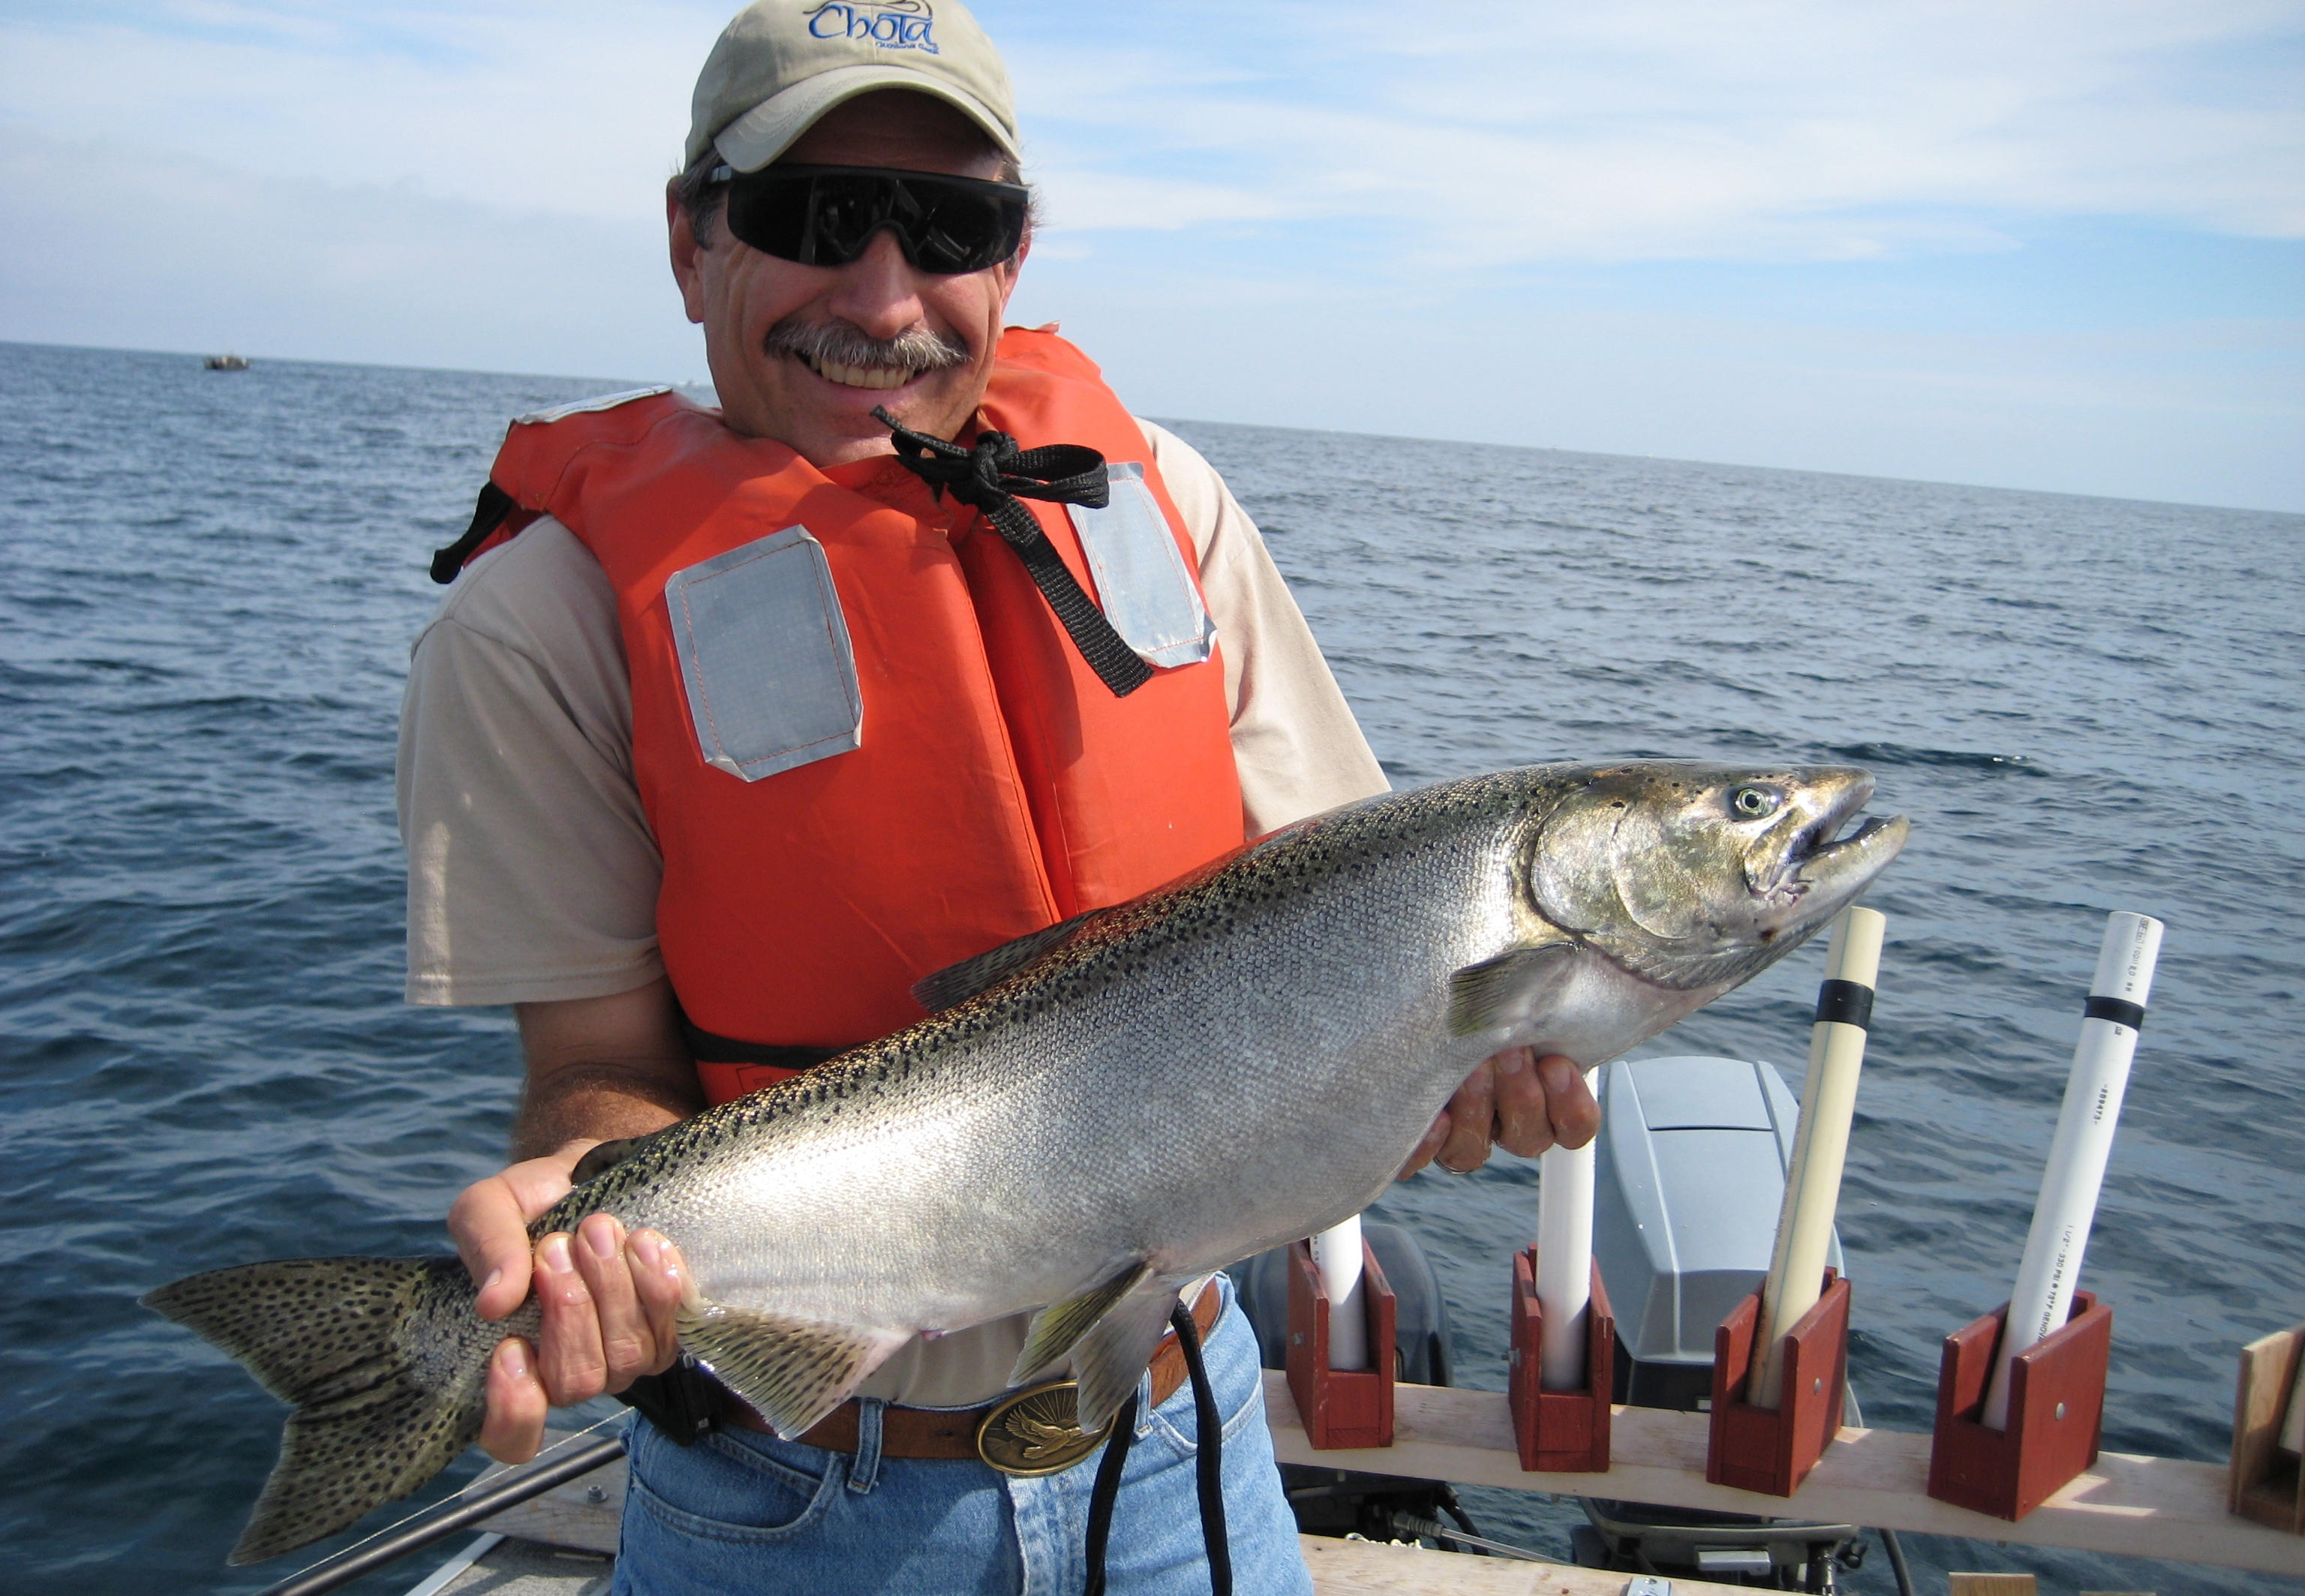 Chinook salmon are non-native to Michigan, but bring benefits to the state.